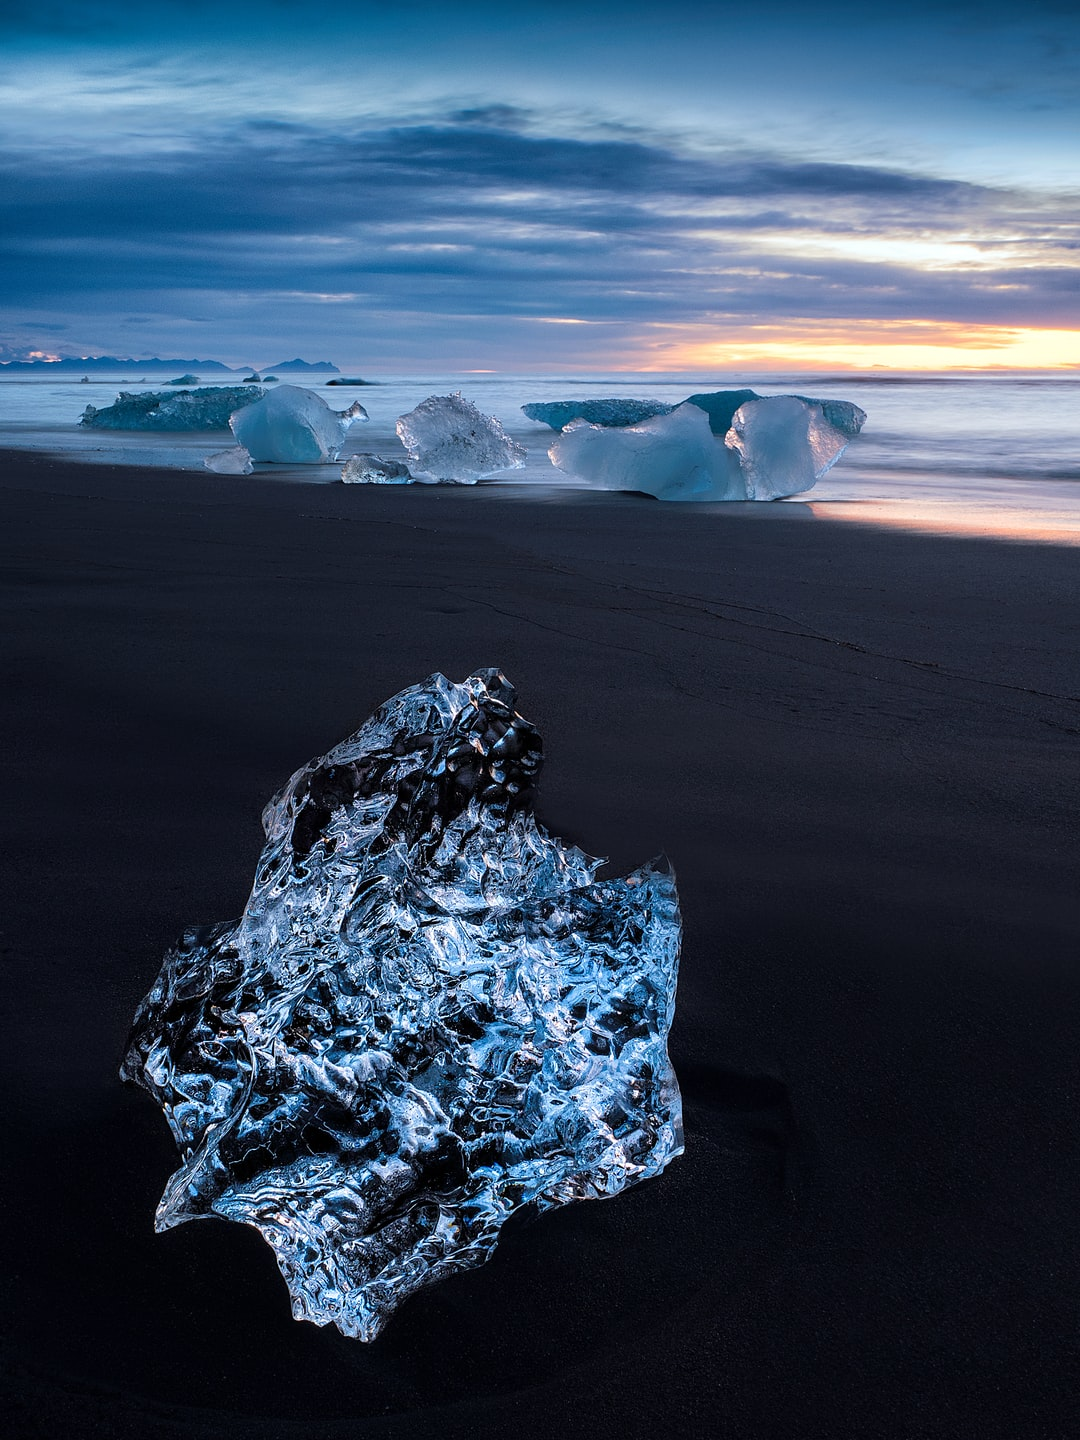 A crystal clear iceberg washed up on the black volcanic sands of the beach at Jökulsárlón, Iceland (Glacier Lagoon). This image was shot at sunrise.